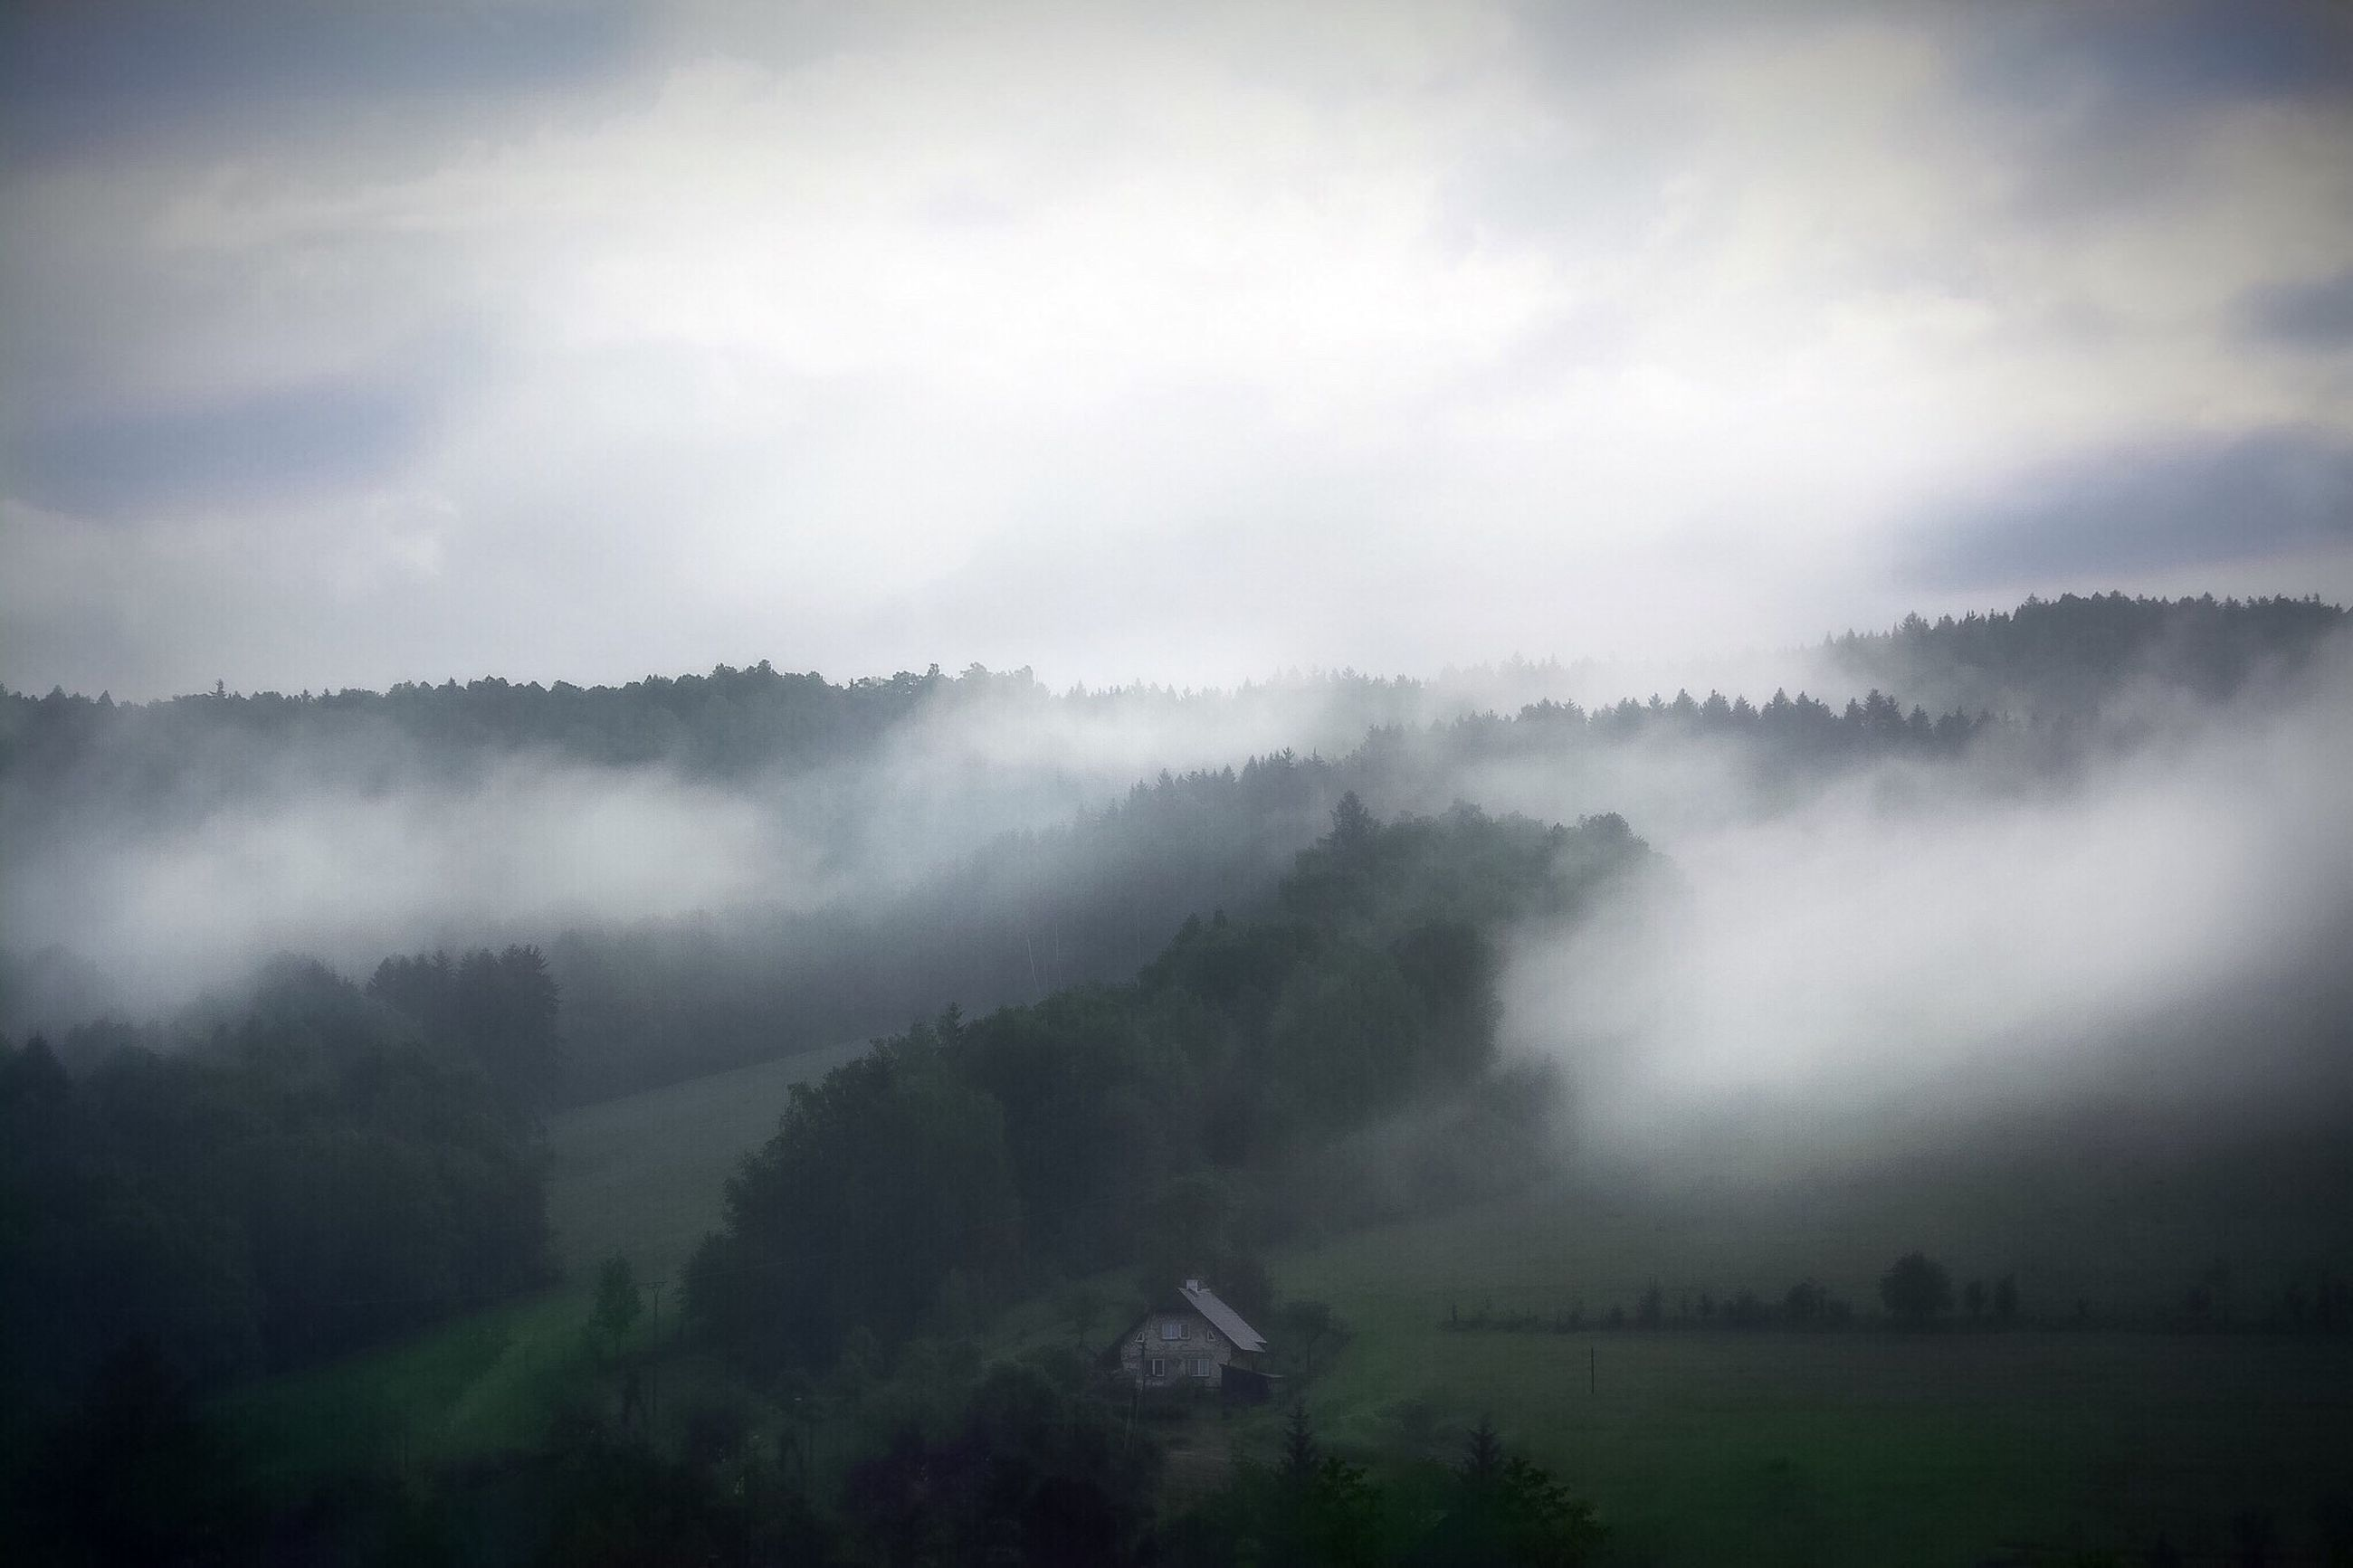 fog, foggy, tranquil scene, scenics, weather, tranquility, beauty in nature, tree, sky, nature, landscape, cloud - sky, idyllic, cloudy, growth, non-urban scene, mountain, overcast, outdoors, mist, day, no people, remote, cloud, majestic, travel destinations, green color